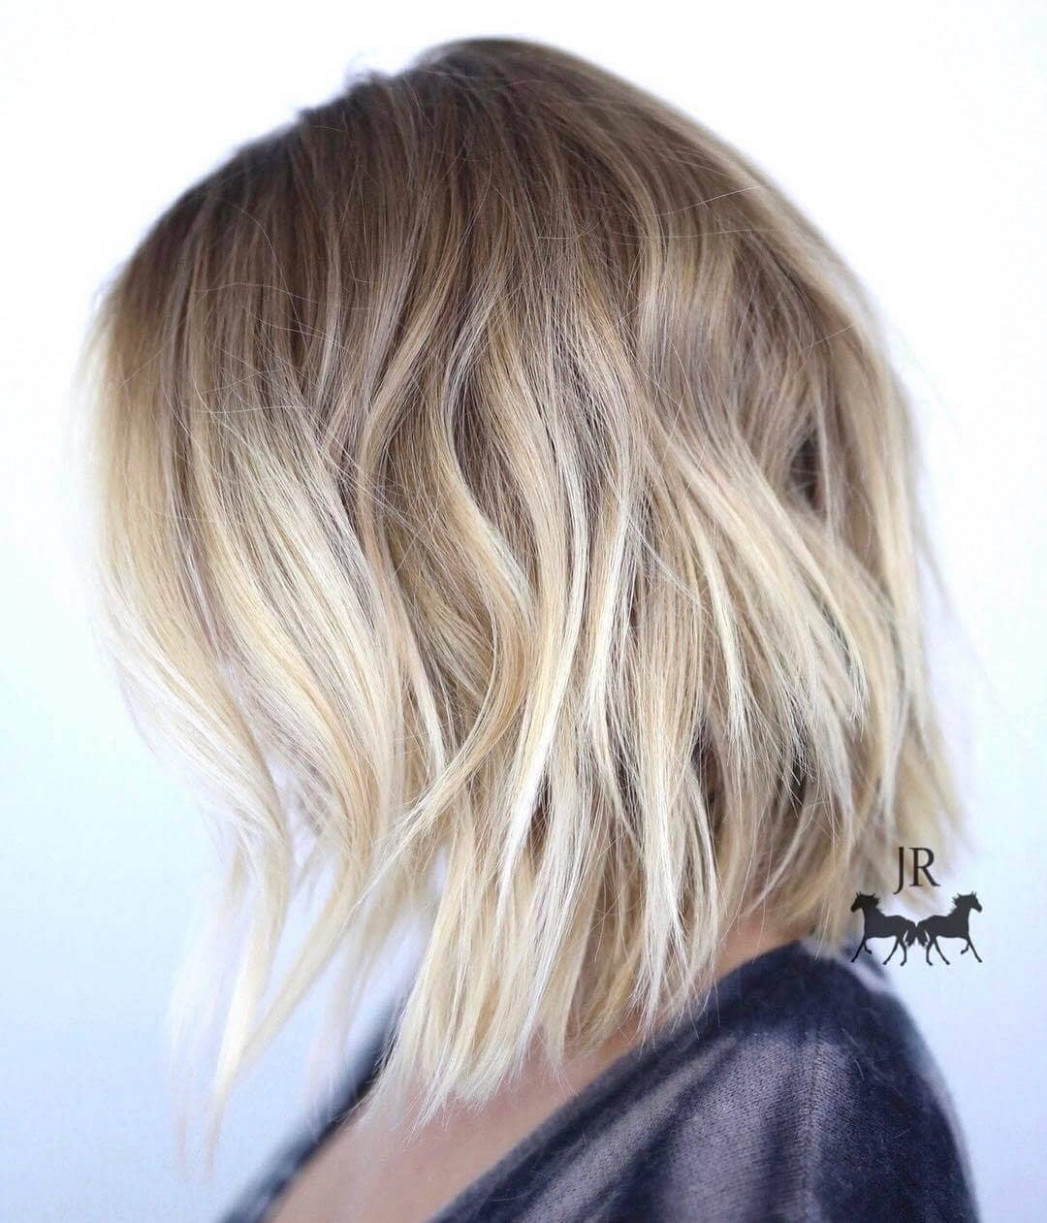 8 fresh short blonde hair ideas to update your style in 8 short blonde hairstyle